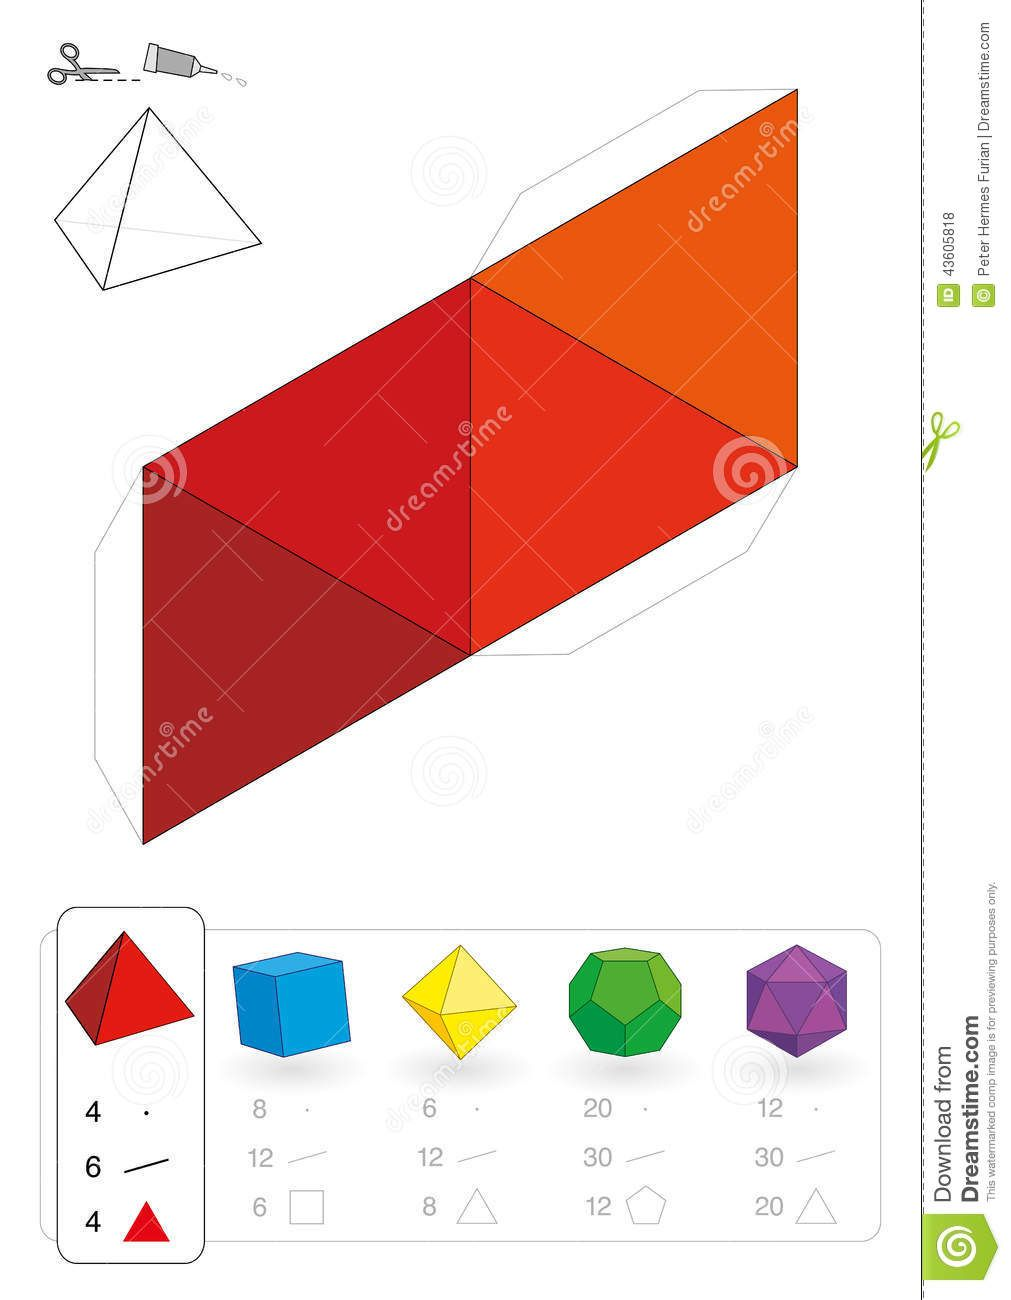 Paper Model Tetrahedron Photo About Dimensional Model Figure Platonic Polyhedron Handicraft Education Decorative Craft Paper Models Paper 3d Triangle